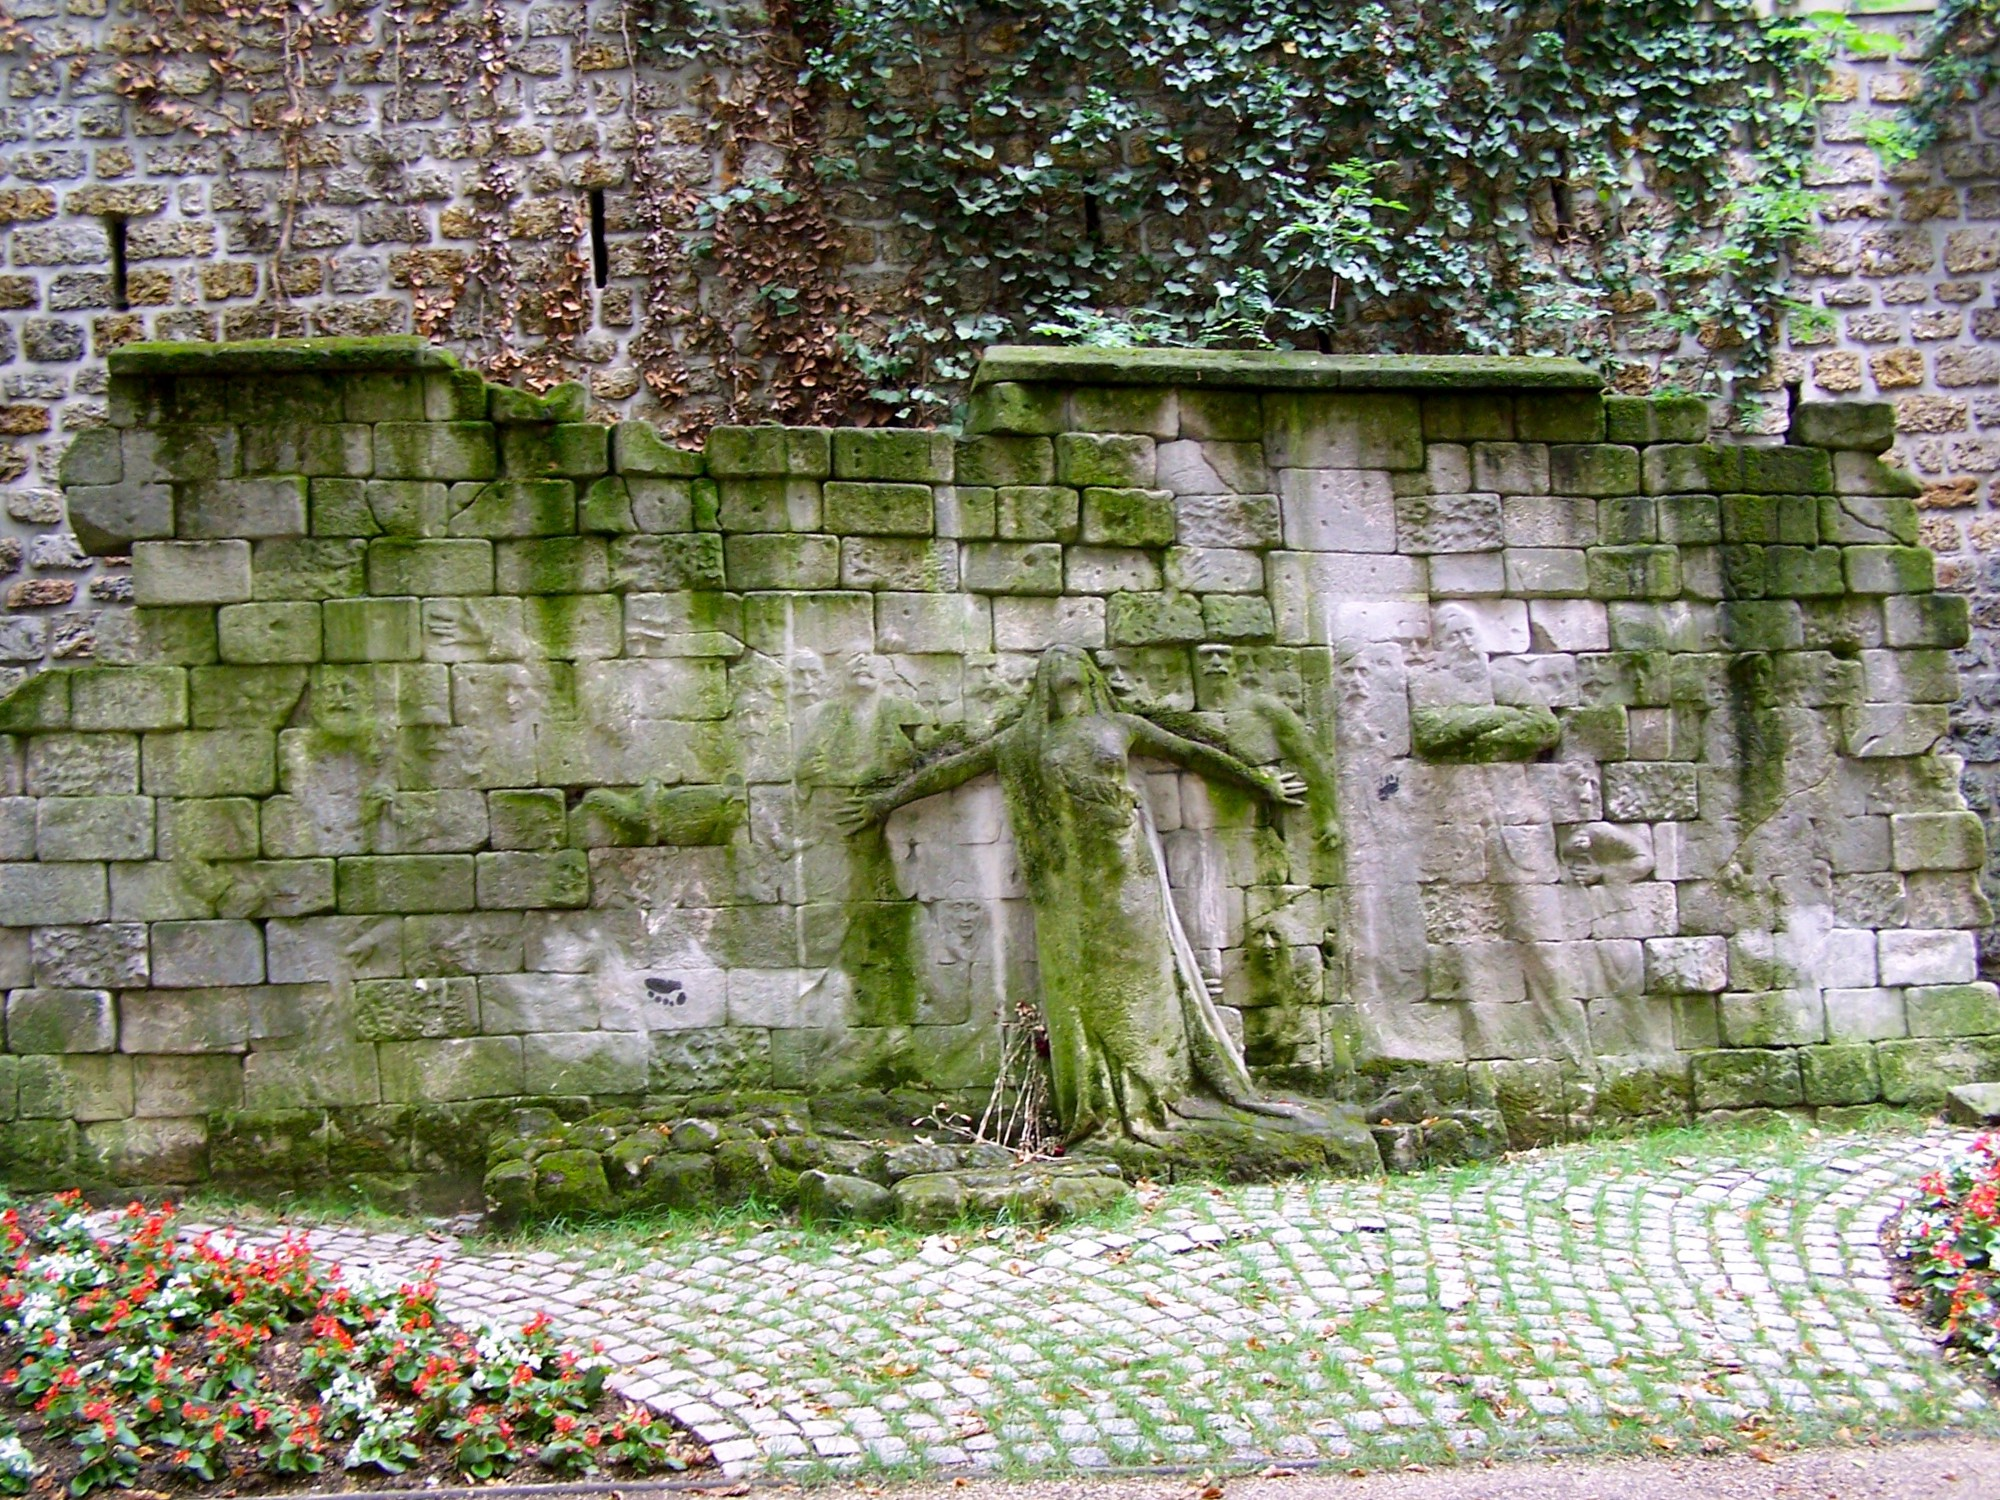 Carved in relief on an old stone wall is a plaintive female figure, arms outreached, eyes skyward, who can be clearly seen. Less visible are the much shallower reliefs, the carvings of people, mostly men with mustaches, who seem to hover around her.